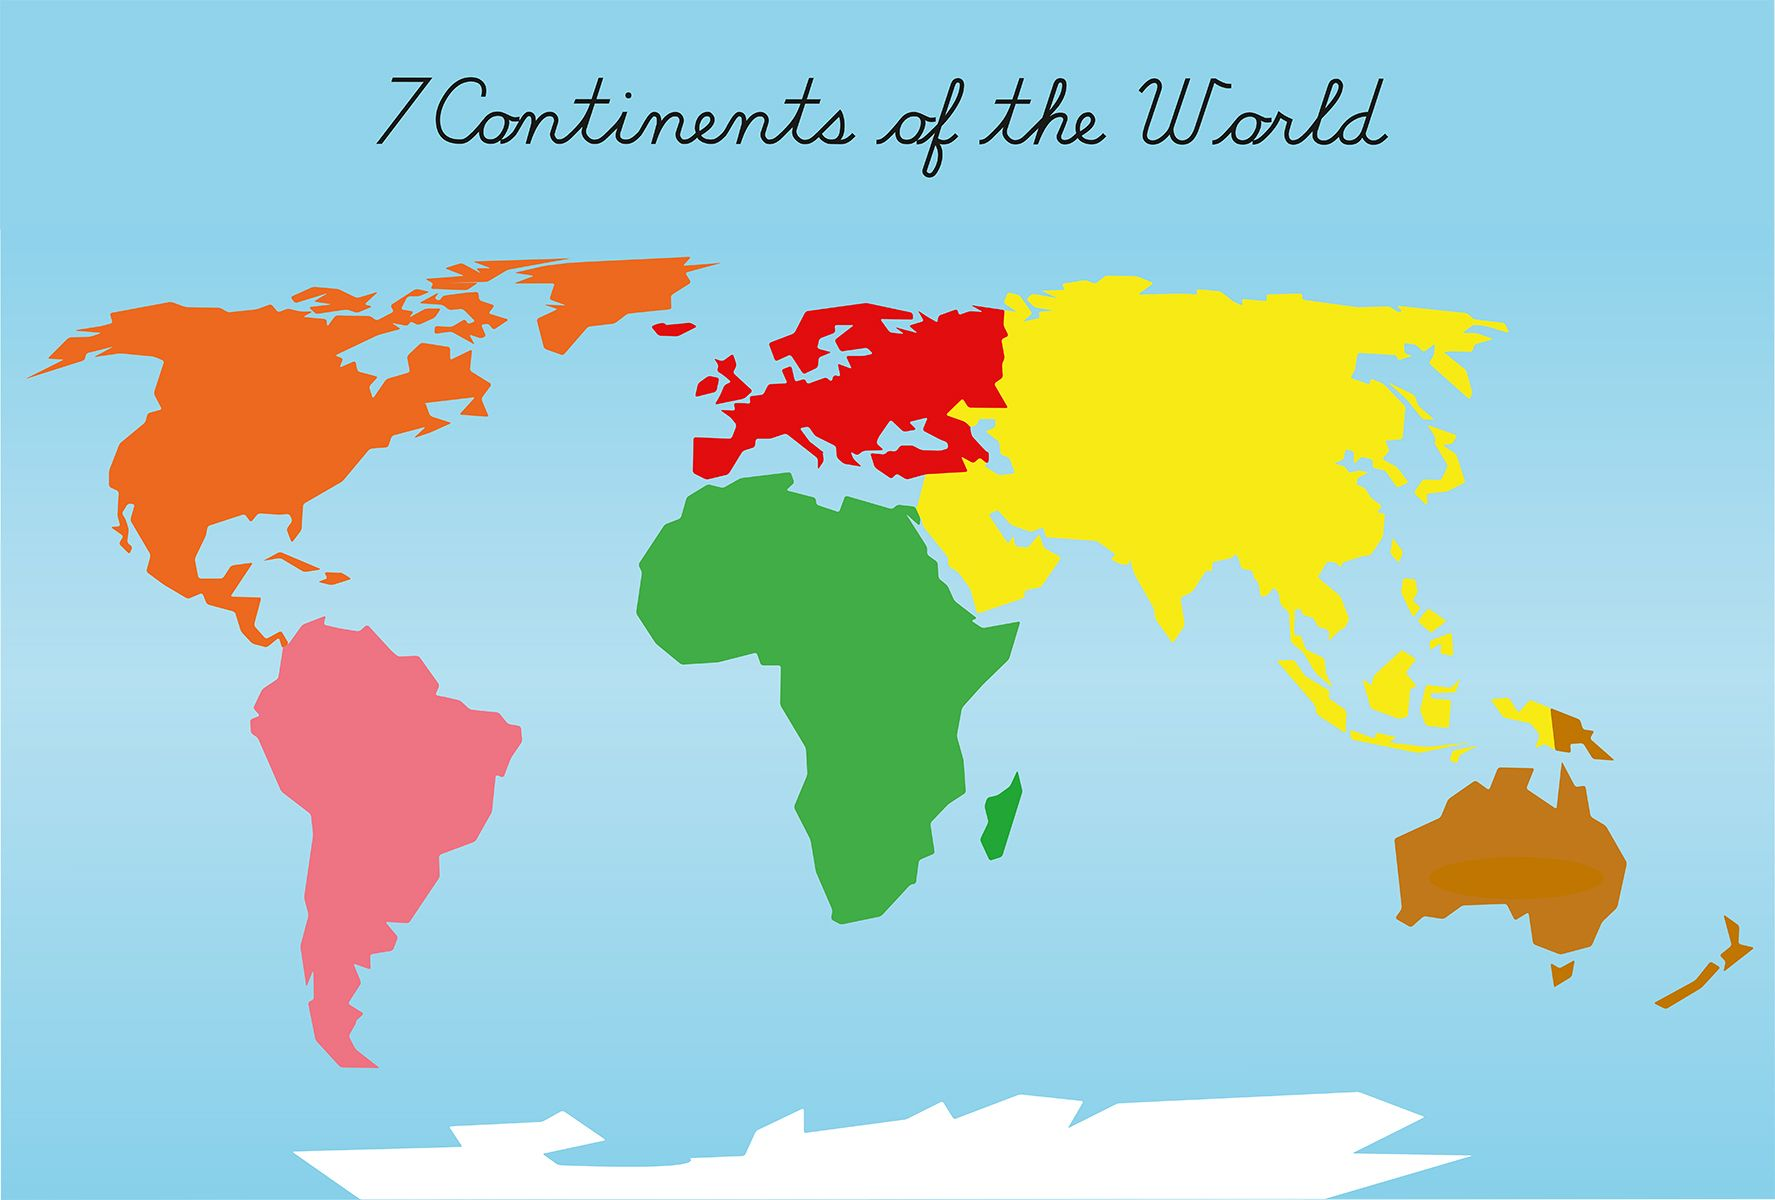 Montessori continents puzzle maps a2 a3 a4 montessori premium quality montessori printable for teachers homeschooling parents montessori puzzle maps of 7 continents of the world in 3 different sizes a2 gumiabroncs Gallery